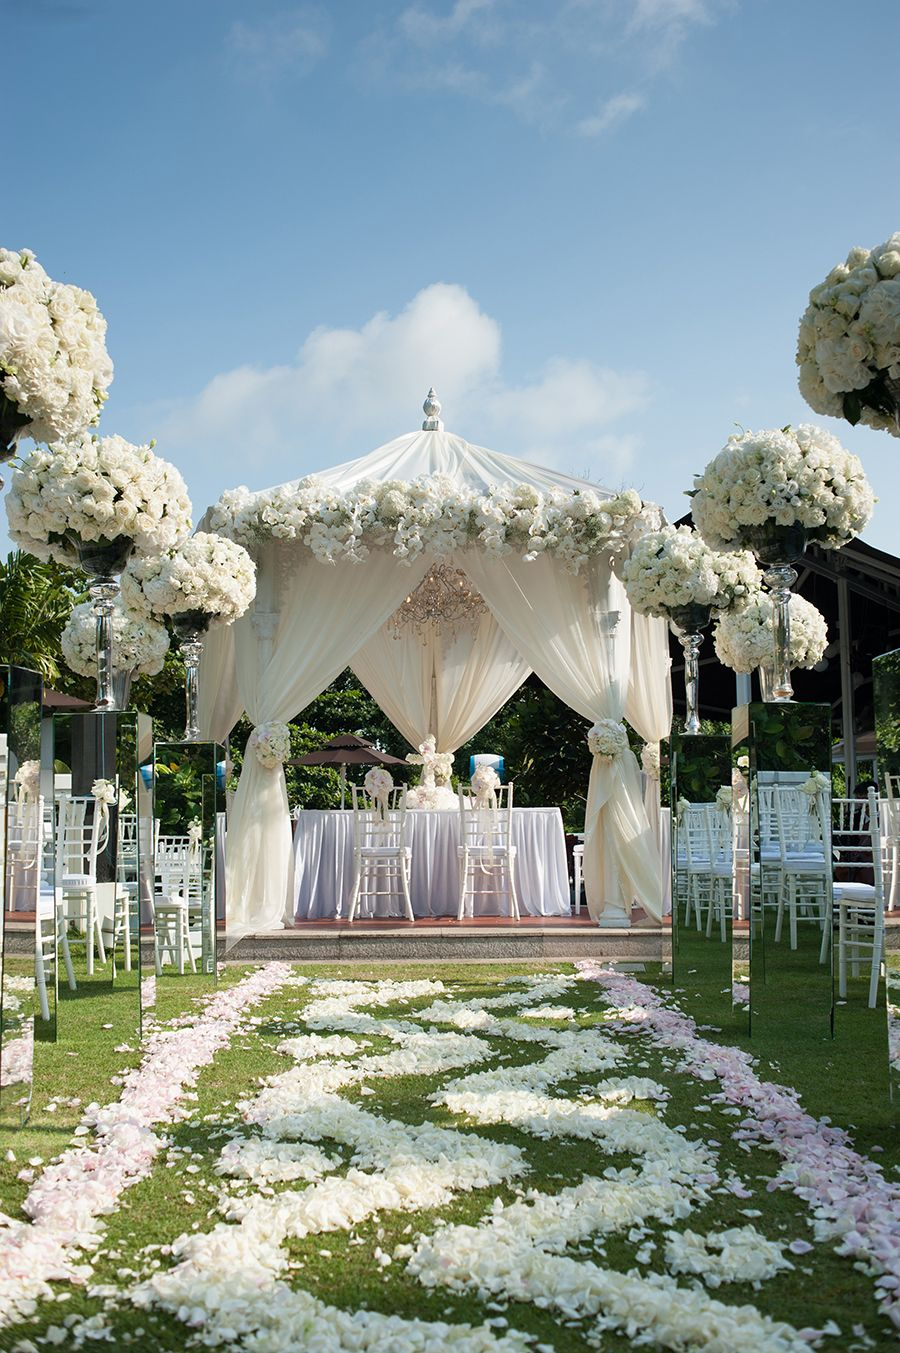 Wedding gazebo decorated with white and pink flowers jeffrey and wedding gazebo decorated with white and pink flowers jeffrey and daphnes exquisite wedding at junglespirit Image collections